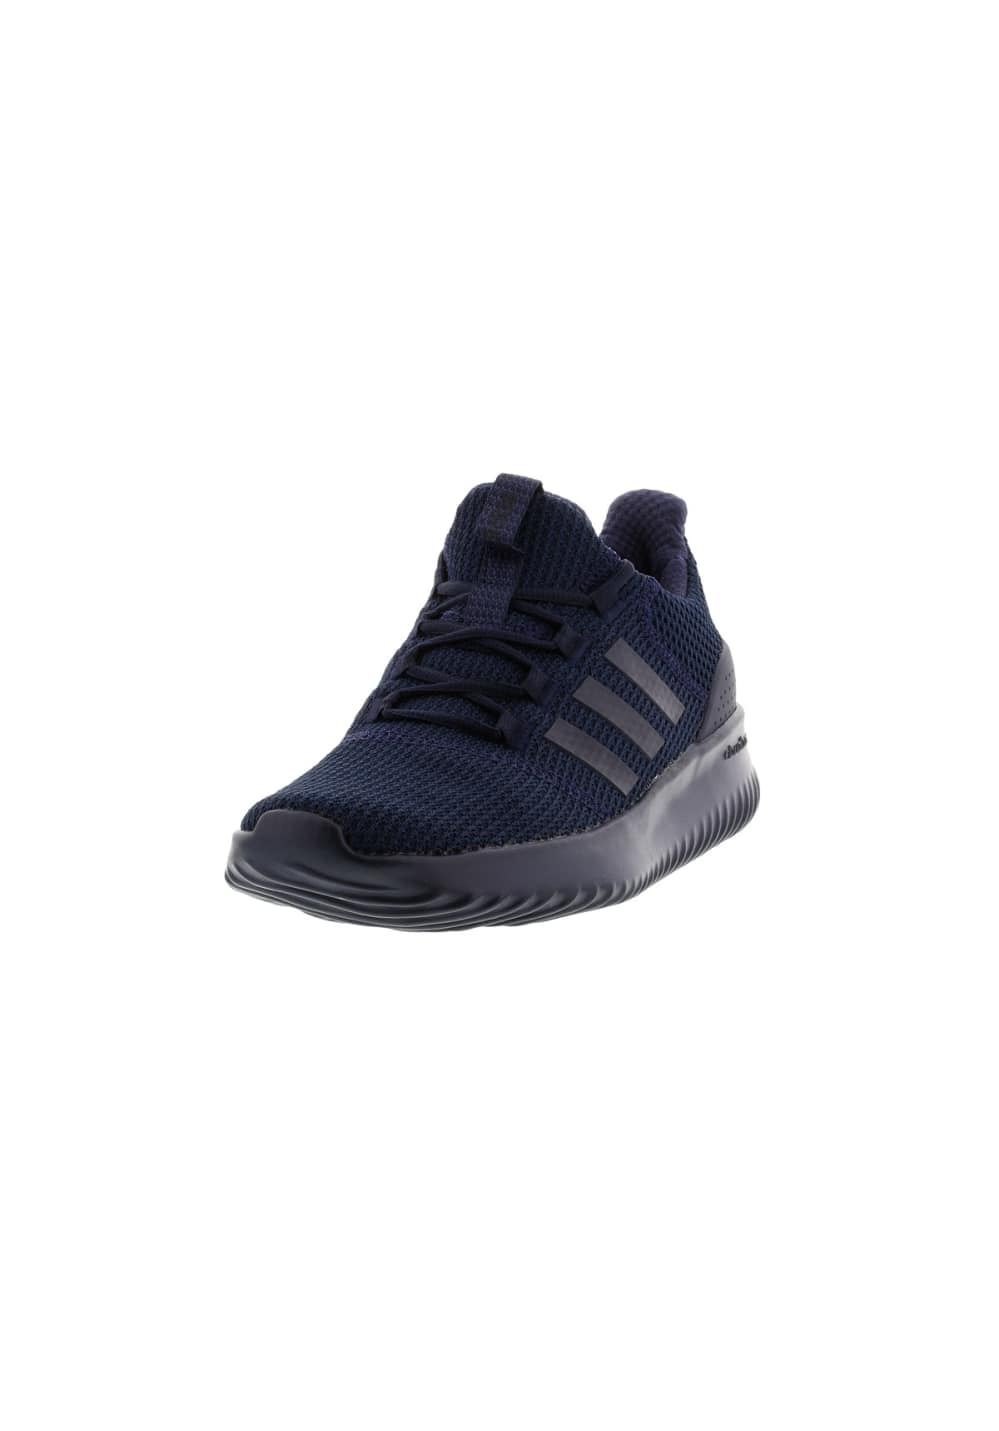 factory authentic b4ed6 1efac Next. -50%. adidas neo. Cloudfoam Ultimate - Chaussures running pour Homme